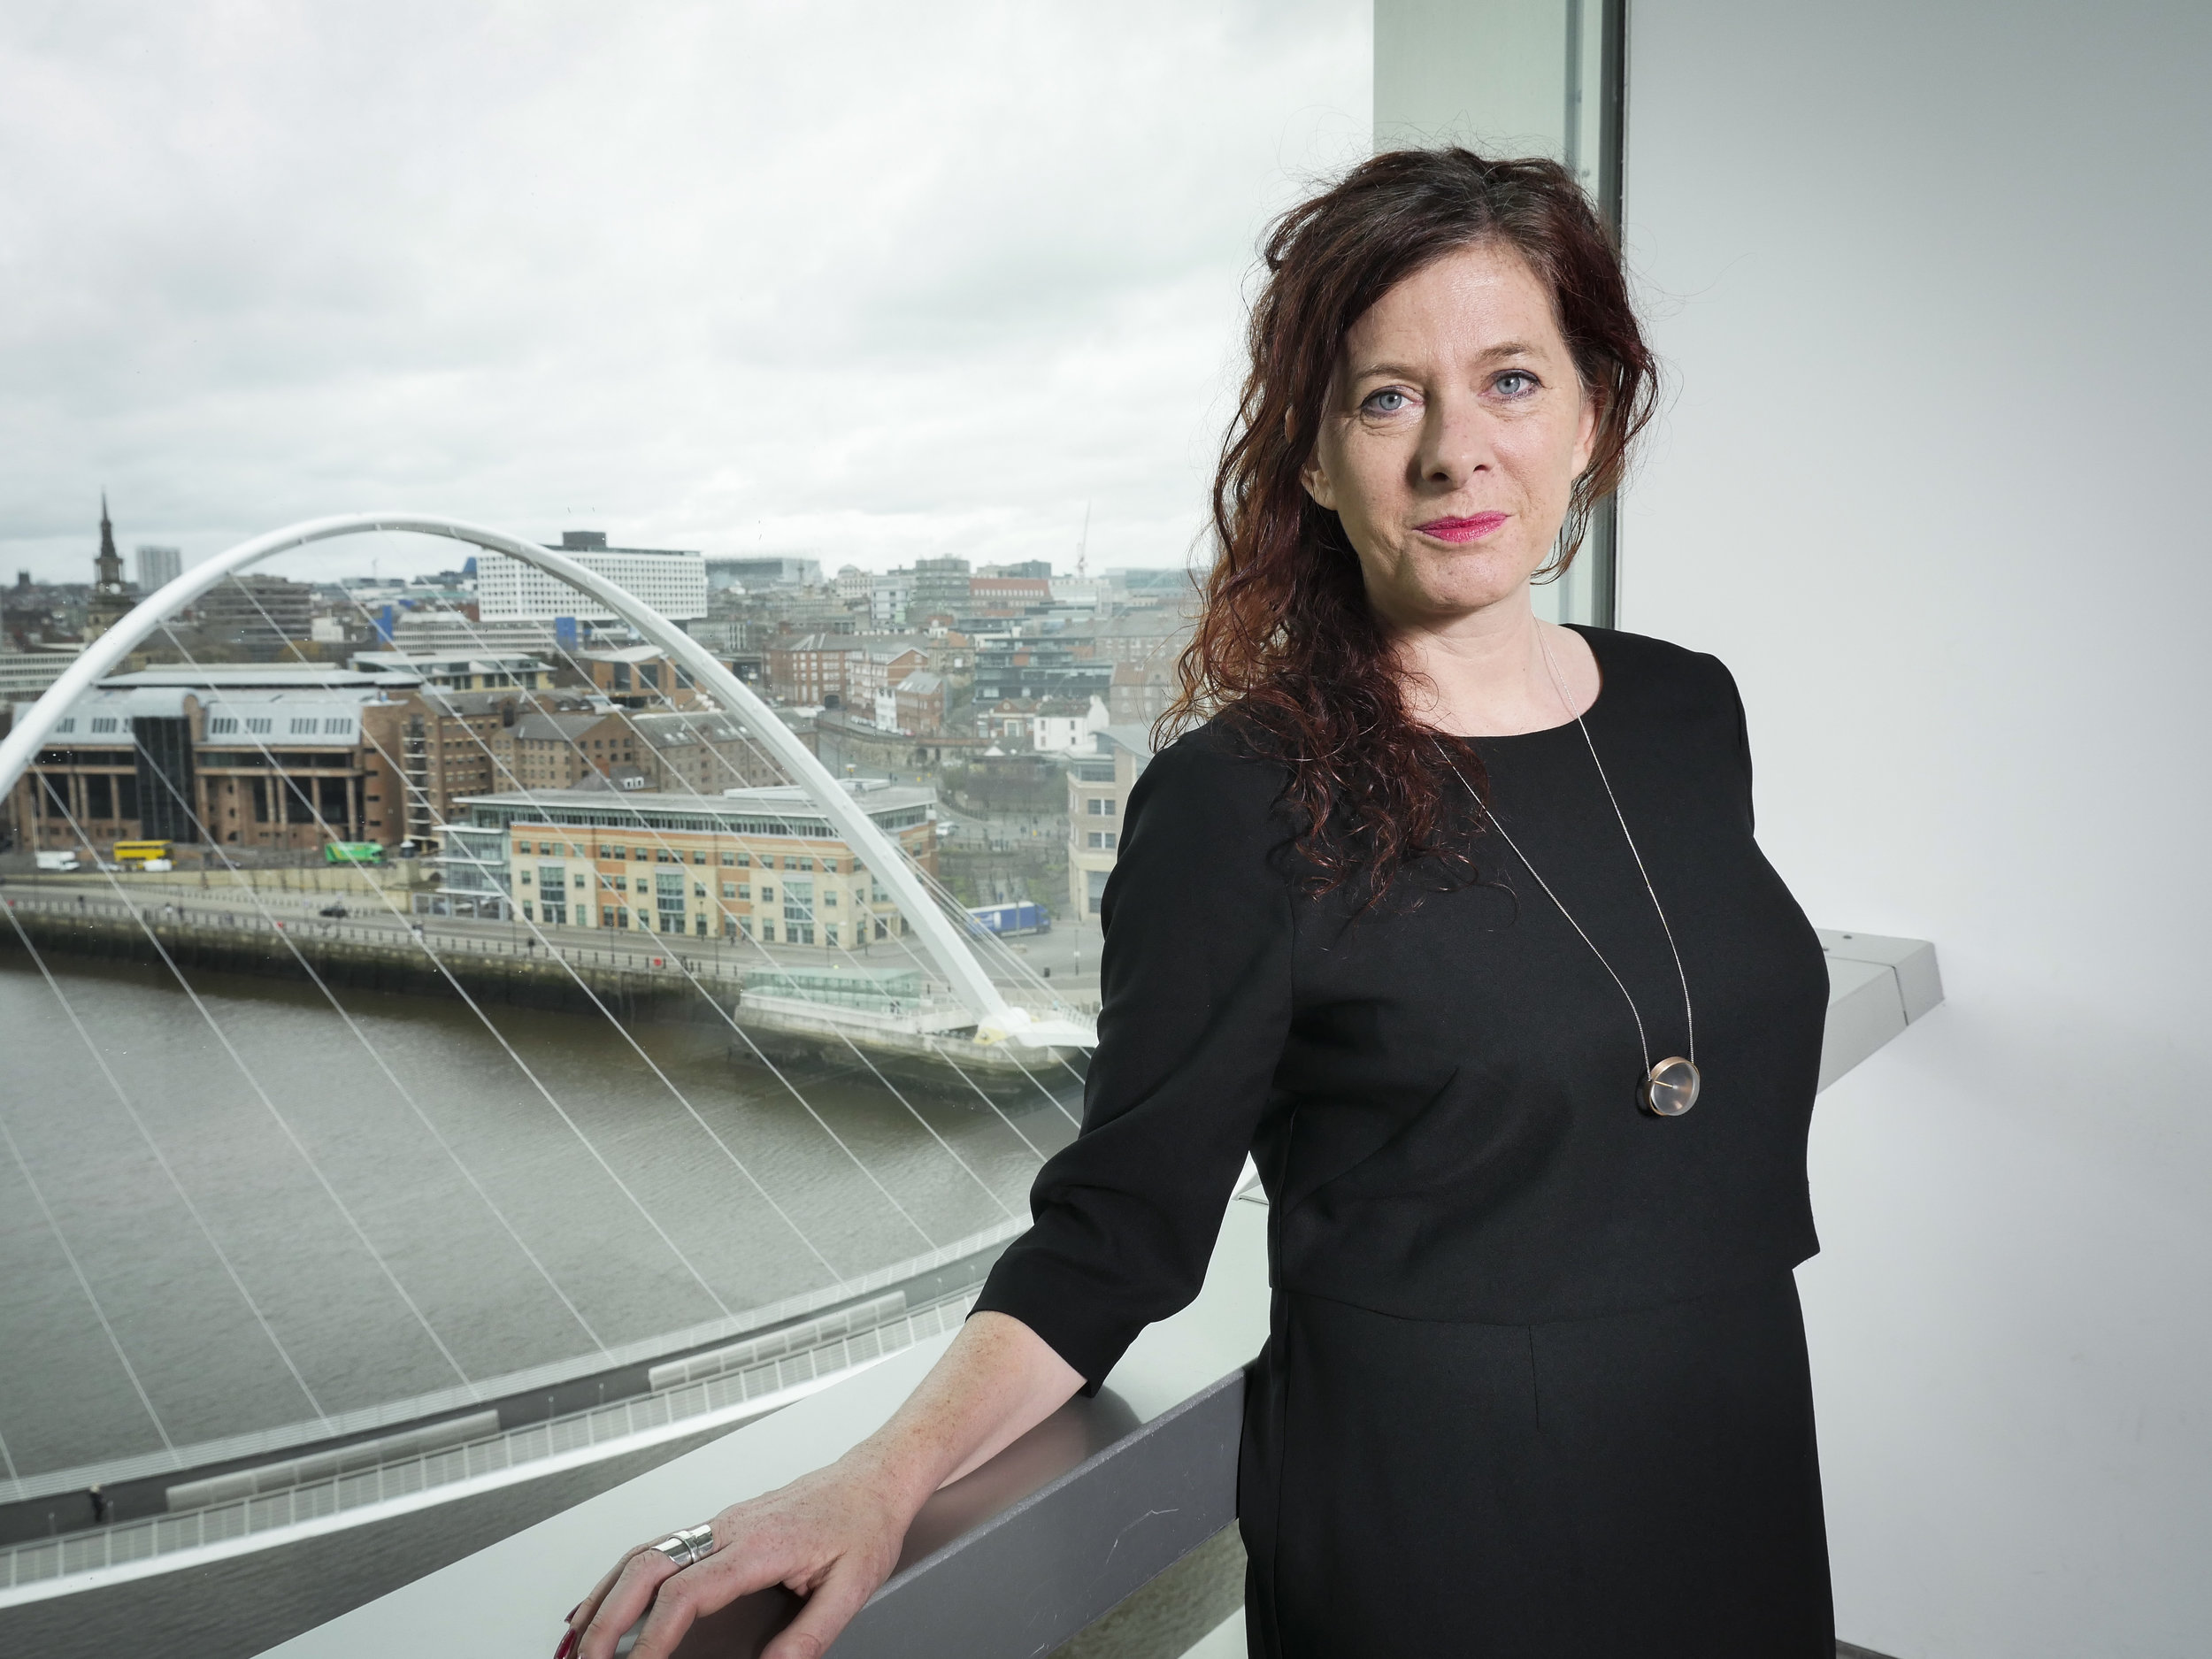 Sarah Munro - Chair, CVAN North East & Chair, CVAN NationalSarah Munro was appointed as Director of BALTIC in August 2015. Munro has over 20 years' experience of cultural leadership following a distinguished career in Glasgow as both Artistic Director of Tramway and Head of Arts for the city, where she led the bid to bring Turner Prize 2015 to Scotland for the first time.Munro was Head of Arts for Glasgow Life from 2012-2015, and this role incorporated her role at the international arts centre Tramway, as well as responsibility for a portfolio that included: Glasgow International Festival of Visual Art, Gallery of Modern Art's temporary exhibitions programme and the Merchant City Festival. She also led a team of arts producers that worked across some of the most disadvantaged communities in Glasgow.As Head of Arts, Munro was instrumental in the initiation and co-production of 'Generation, 25 Years of Contemporary Art in Scotland'. This major series of exhibitions in 2014 was shown at over 60 venues celebrating a generation of internationally renowned artists that have emerged from Scotland in the last 25 years including: Martin Boyce, Cathy Wilkes, Douglas Gordon, Christine Borland, Claire Barclay, Michael Fullerton and Sara Barker among many others. The project attracted over 1.4million visitors and initiated a ground-breaking new model of collaboration between the National Galleries of Scotland, Creative Scotland and the wider visual arts sector.Prior to this, as Artistic Director of Tramway from 2008 to 2012, Munro led the revitalisation of the centre's public programming including visual arts and dance, which increased attendance at the venue by more than two thirds, and enhanced both their critical reputation and audience engagement. From 1996 until 2008, as Director at the Collective Gallery, Edinburgh, Munro transformed the organisation into an internationally recognised space with a unique position in Scotland. Before taking up the Directors role at the Collective Gallery, Sarah was Projects Director at ARTLINK, Edinburgh and the Lothians.While at Tramway and Collective Gallery, Munro curated, commissioned and produced over 200 exhibitions, performances and offsite projects; from working with and nurturing with emerging talents to realising complex new commissions for internationally renowned artists including Mike Nelson, Wael Shawky, Sarah Lucas, Lara Favoretta, Jannis Kounellis, Marvin Gaye Chetwynd and Christoph Buchel. From ambitious solo shows through to initiatives including New Work Scotland and Dance International Glasgow, Munro has created the conditions that both support artists to take risks, experiment and enable new models for artists and audiences to collaborate (One Mile Programme, Edinburgh; Albert Drive, Glasgow).Sarah gained an MA (Hons) in Politics and Philosophy from University of Dundee and holds a PG Diploma from City University, London.